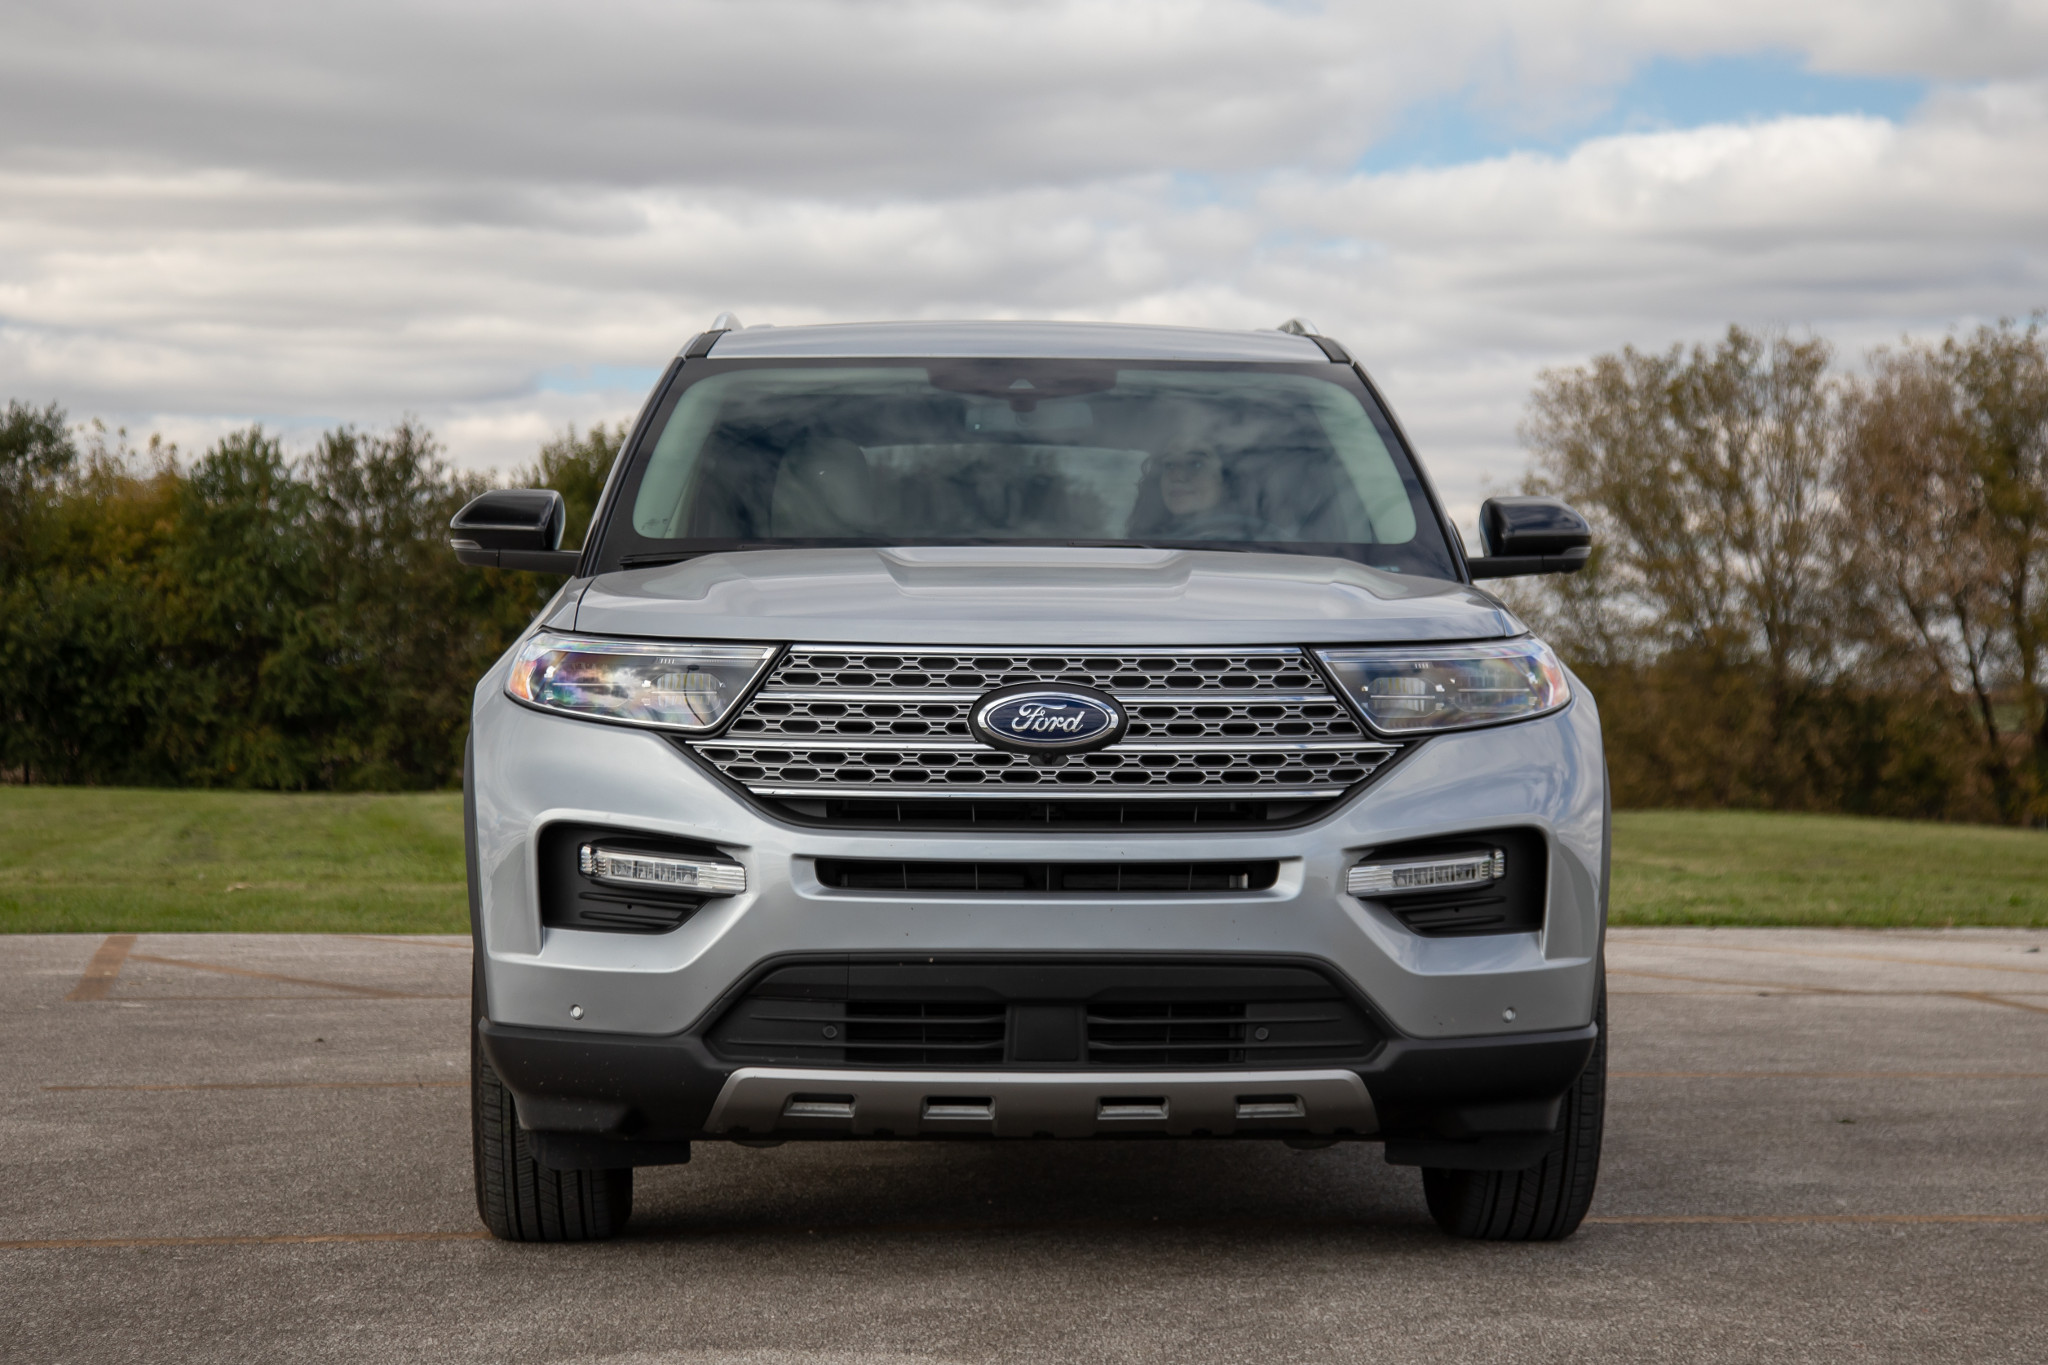 2020 Ford Explorer: 6 Things We Like and 4 Things We Don't